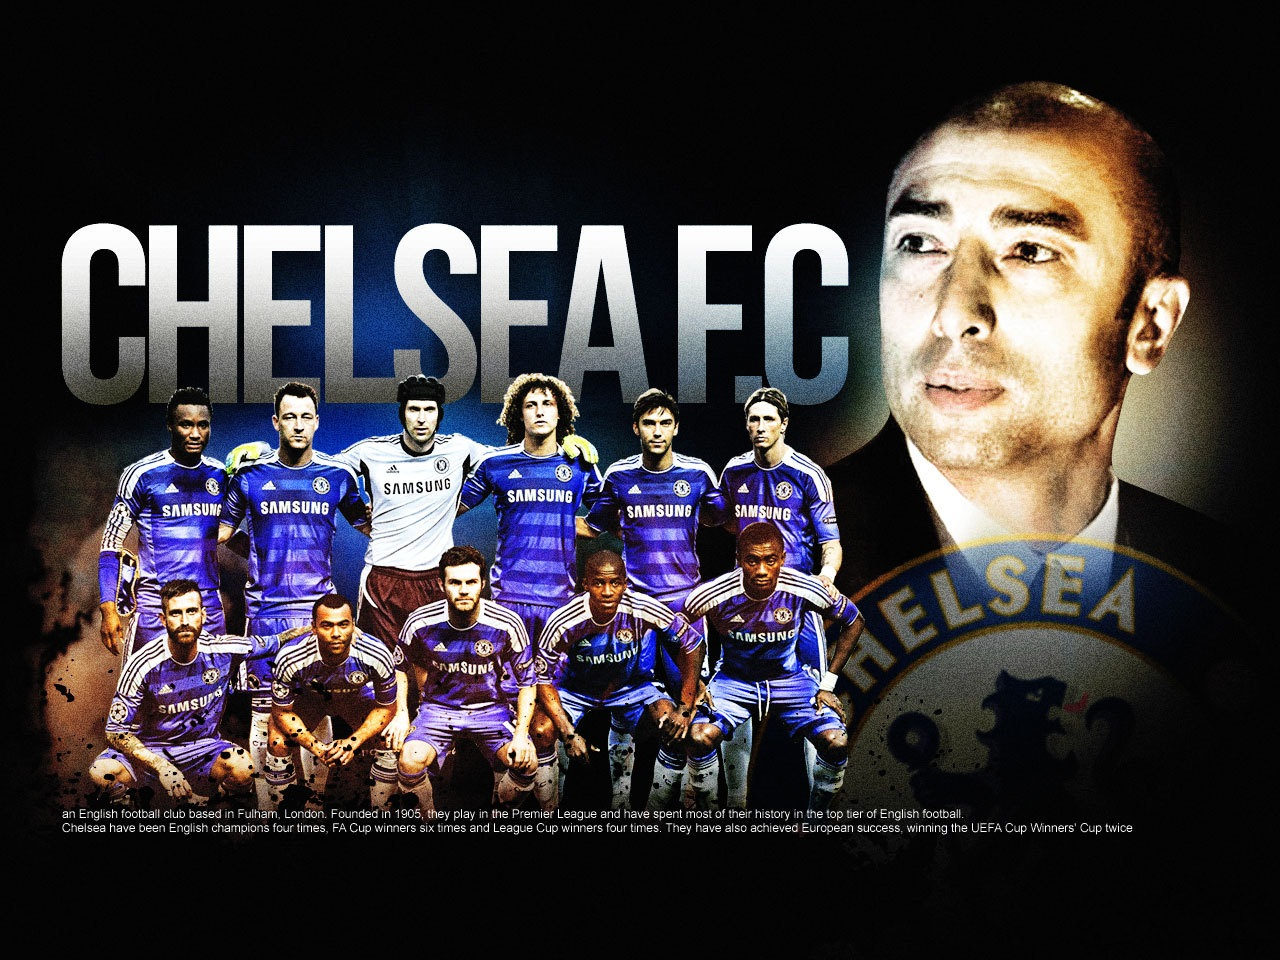 Football Super Stars Chelsea Fc Soccer Hd Wallpapers 2012- picture wallpaper image